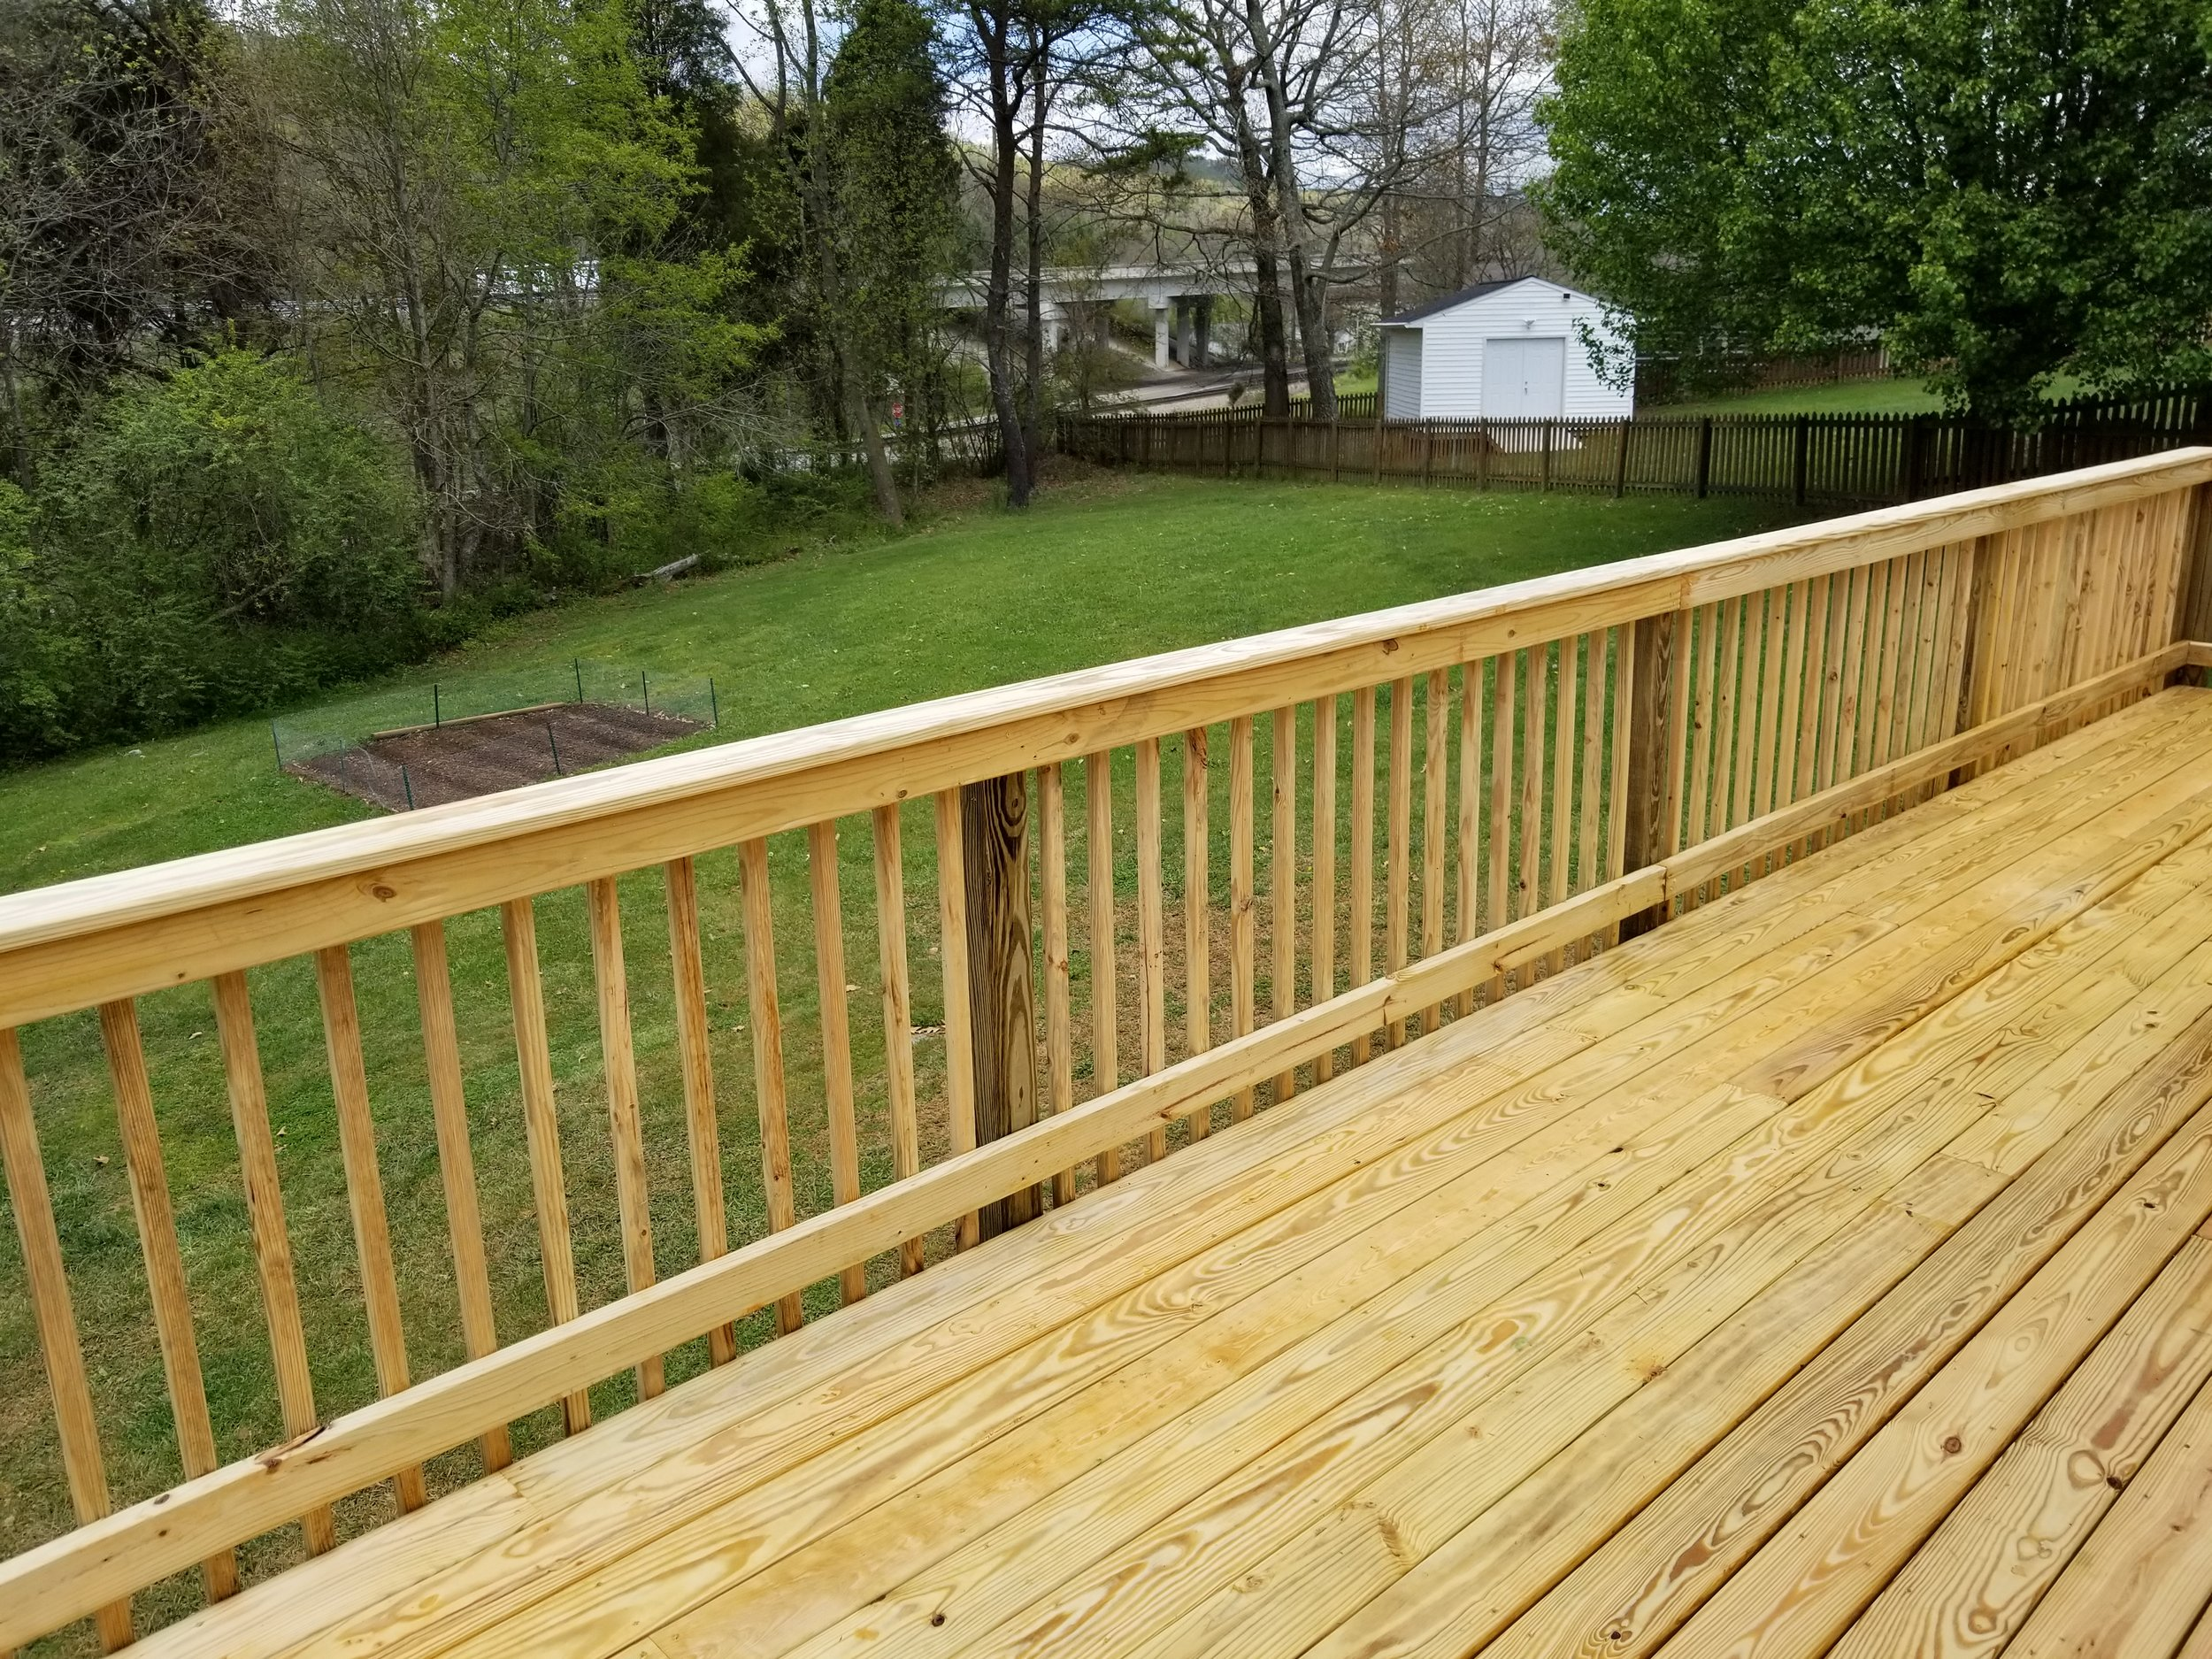 New Wood Deck 225 SQ. Feet (Bristol, Tn)